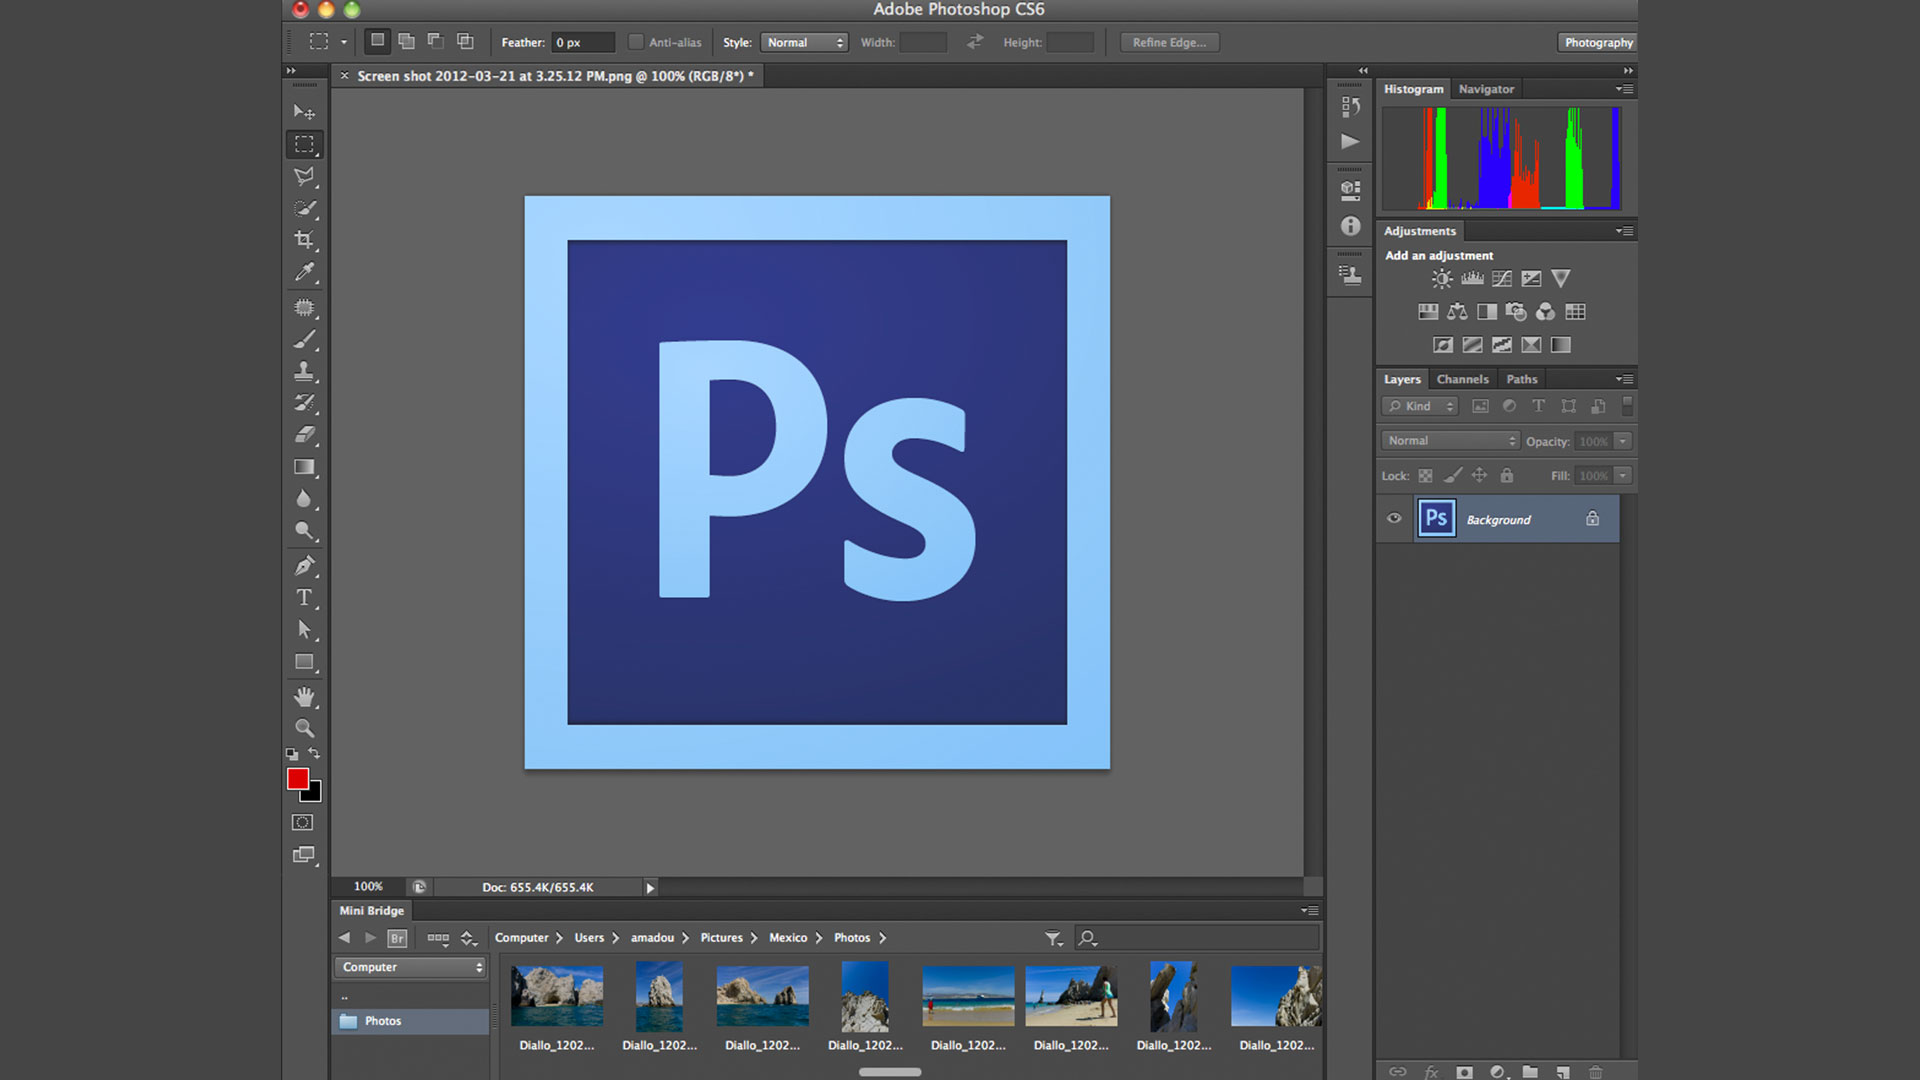 Adobe Photoshop CS6 One on One Fundamentals – 4 – Using Layers – 4-3 Adding, scaling, and aligning layers